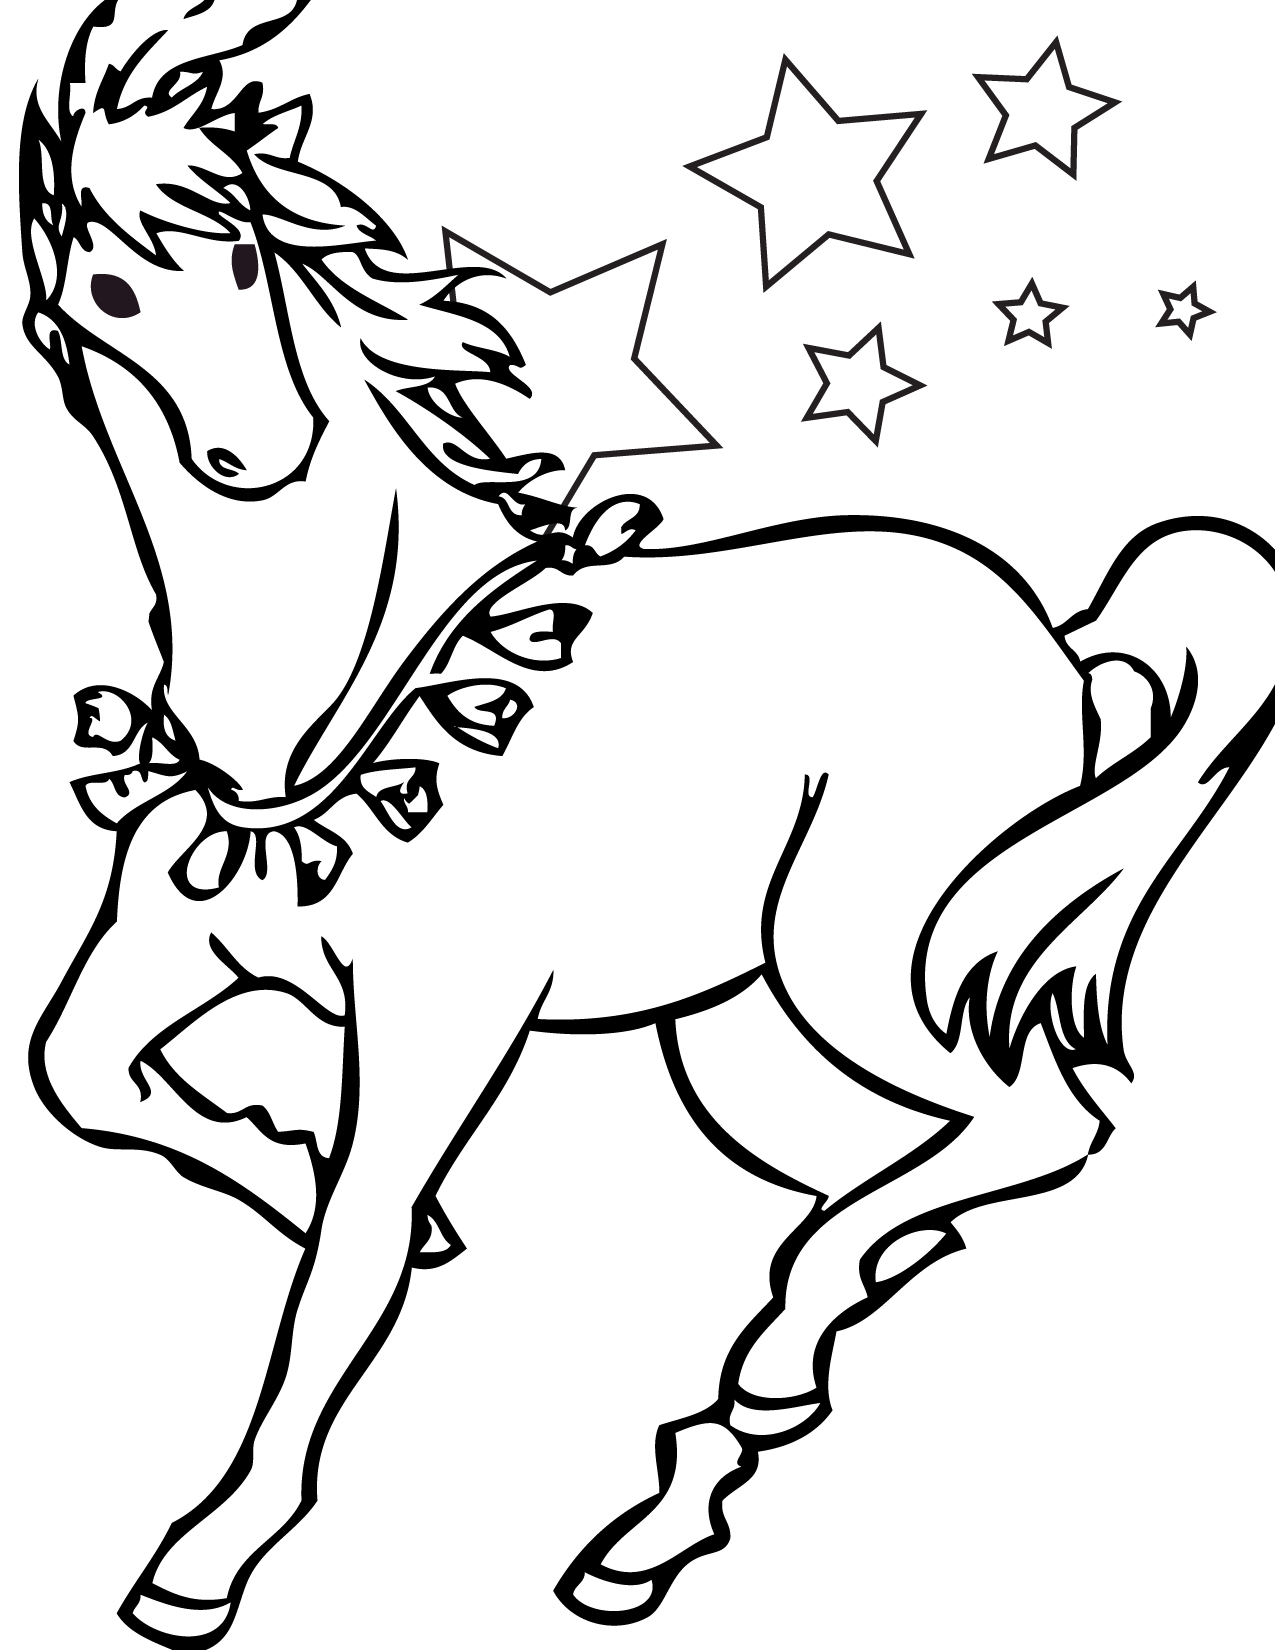 coloring pages of horses to print printable coloring pages of horses bestappsforkidscom print pages horses coloring to of